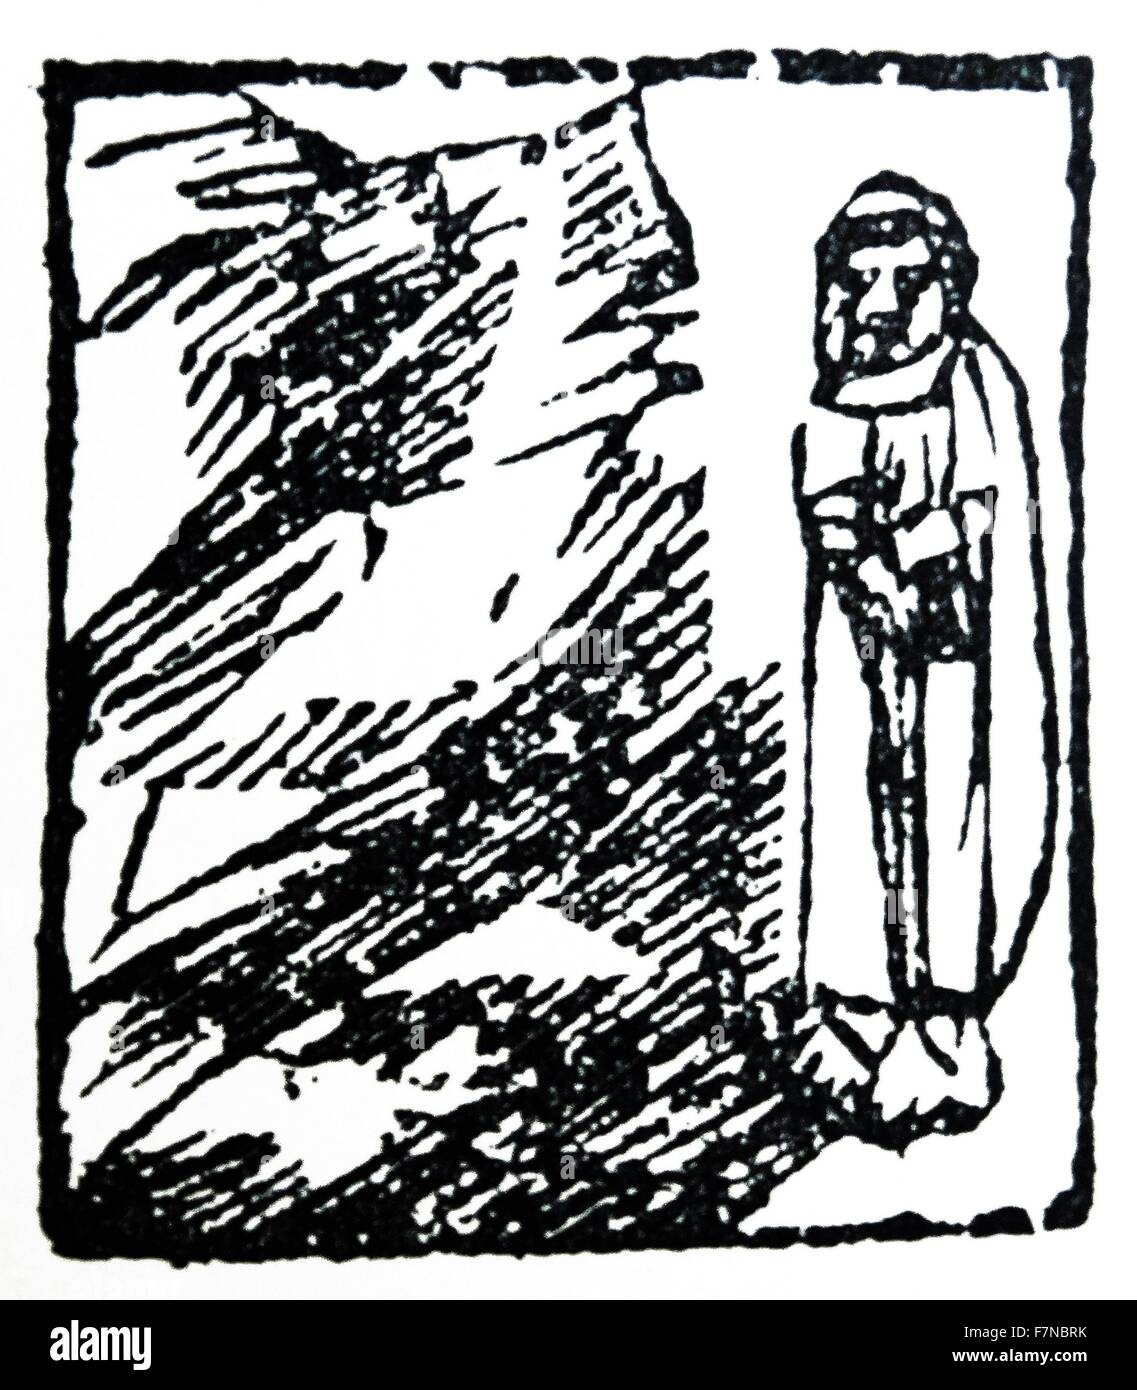 Italian woodcut from 16th century. A woodcut is a relief printing process in which a relief-like wooden printing - Stock Image